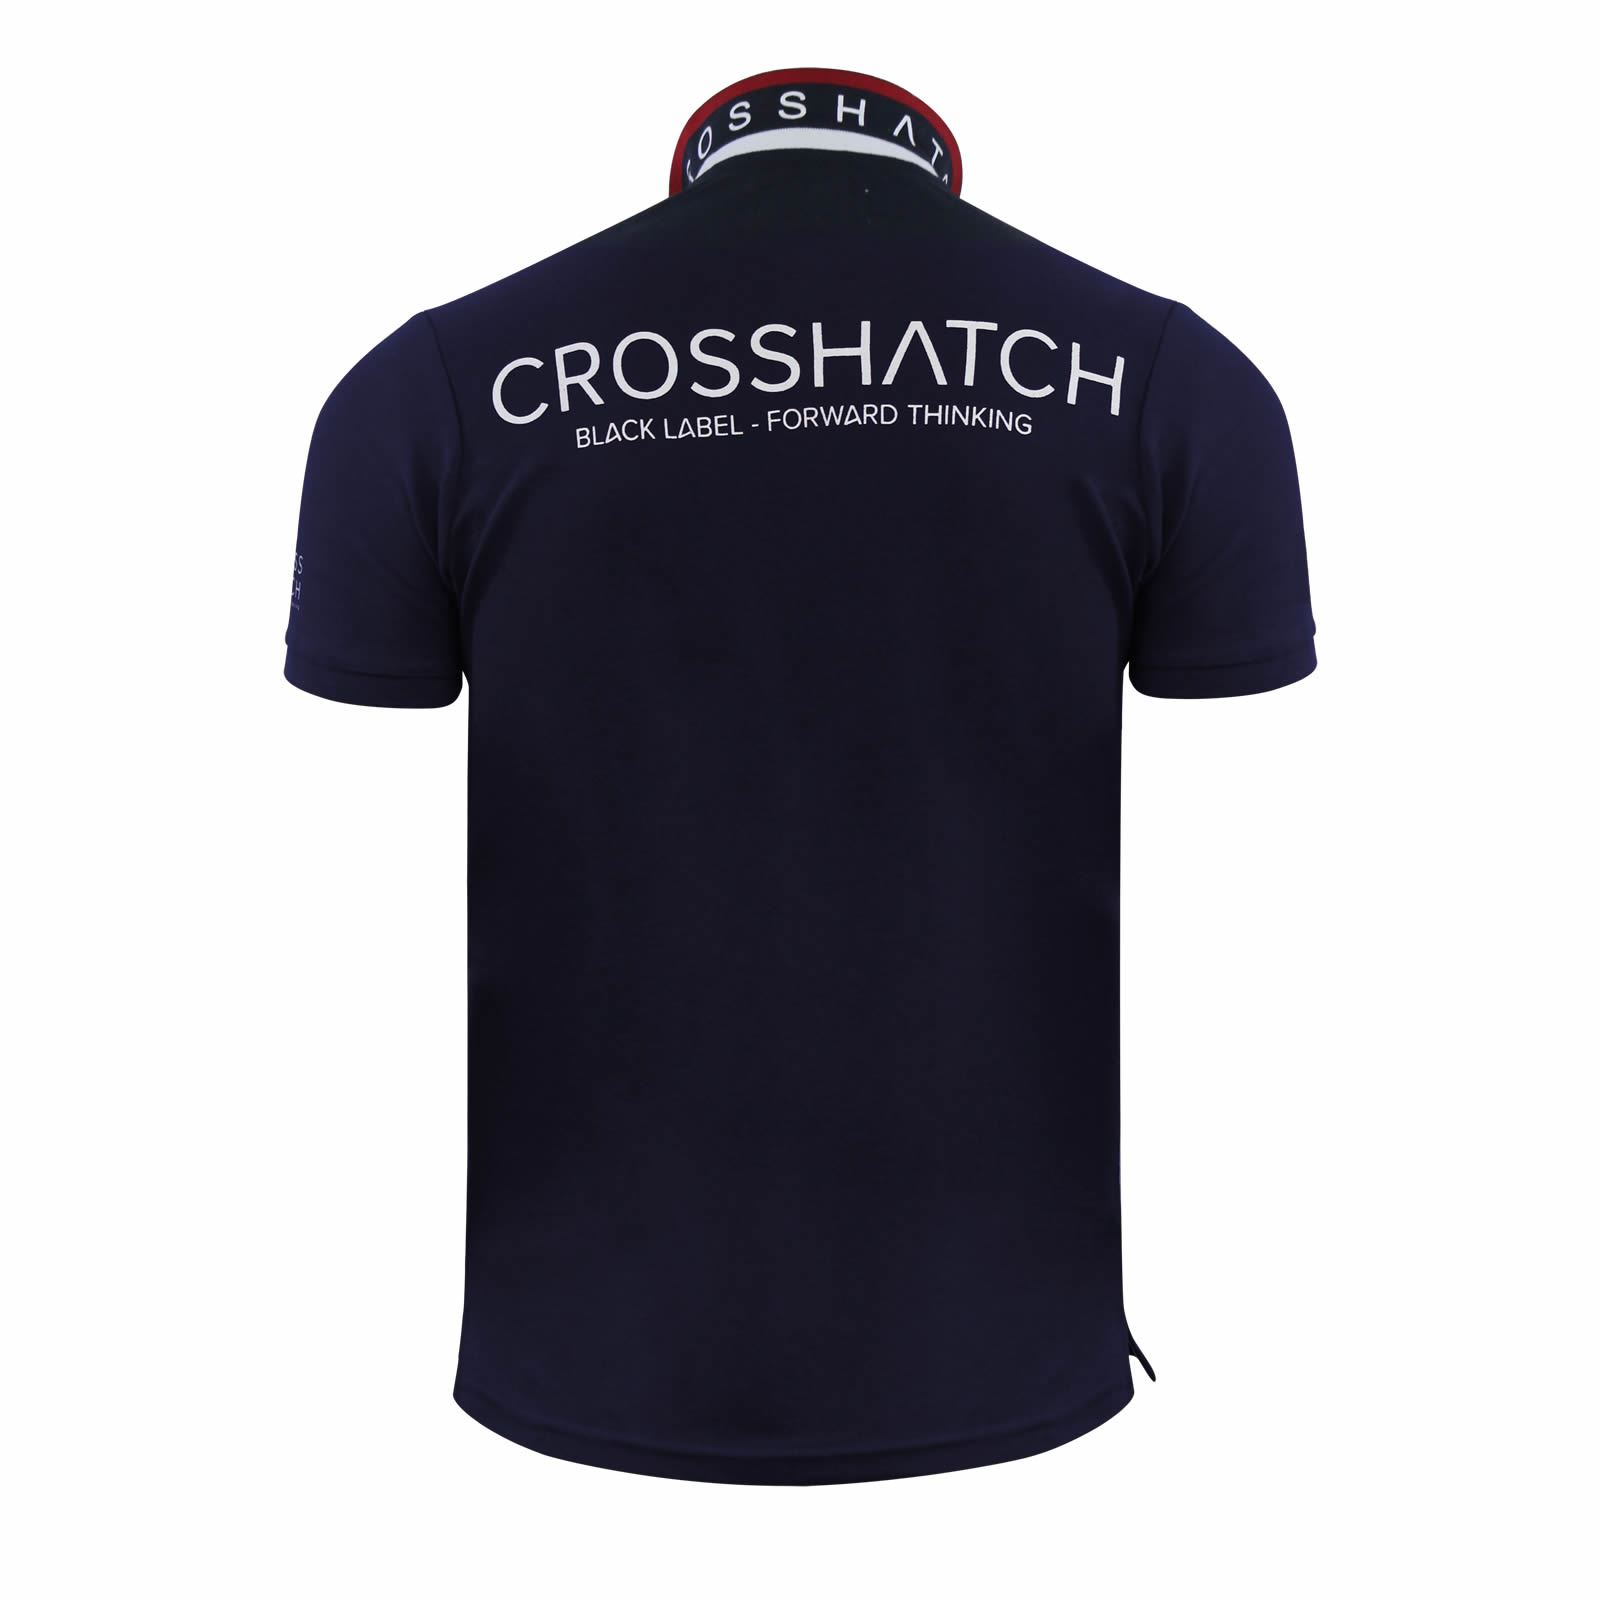 Mens-Polo-T-Shirt-Crosshatch-Evangels-Collared-Cotton-Short-Sleeve-Casual-Top thumbnail 14